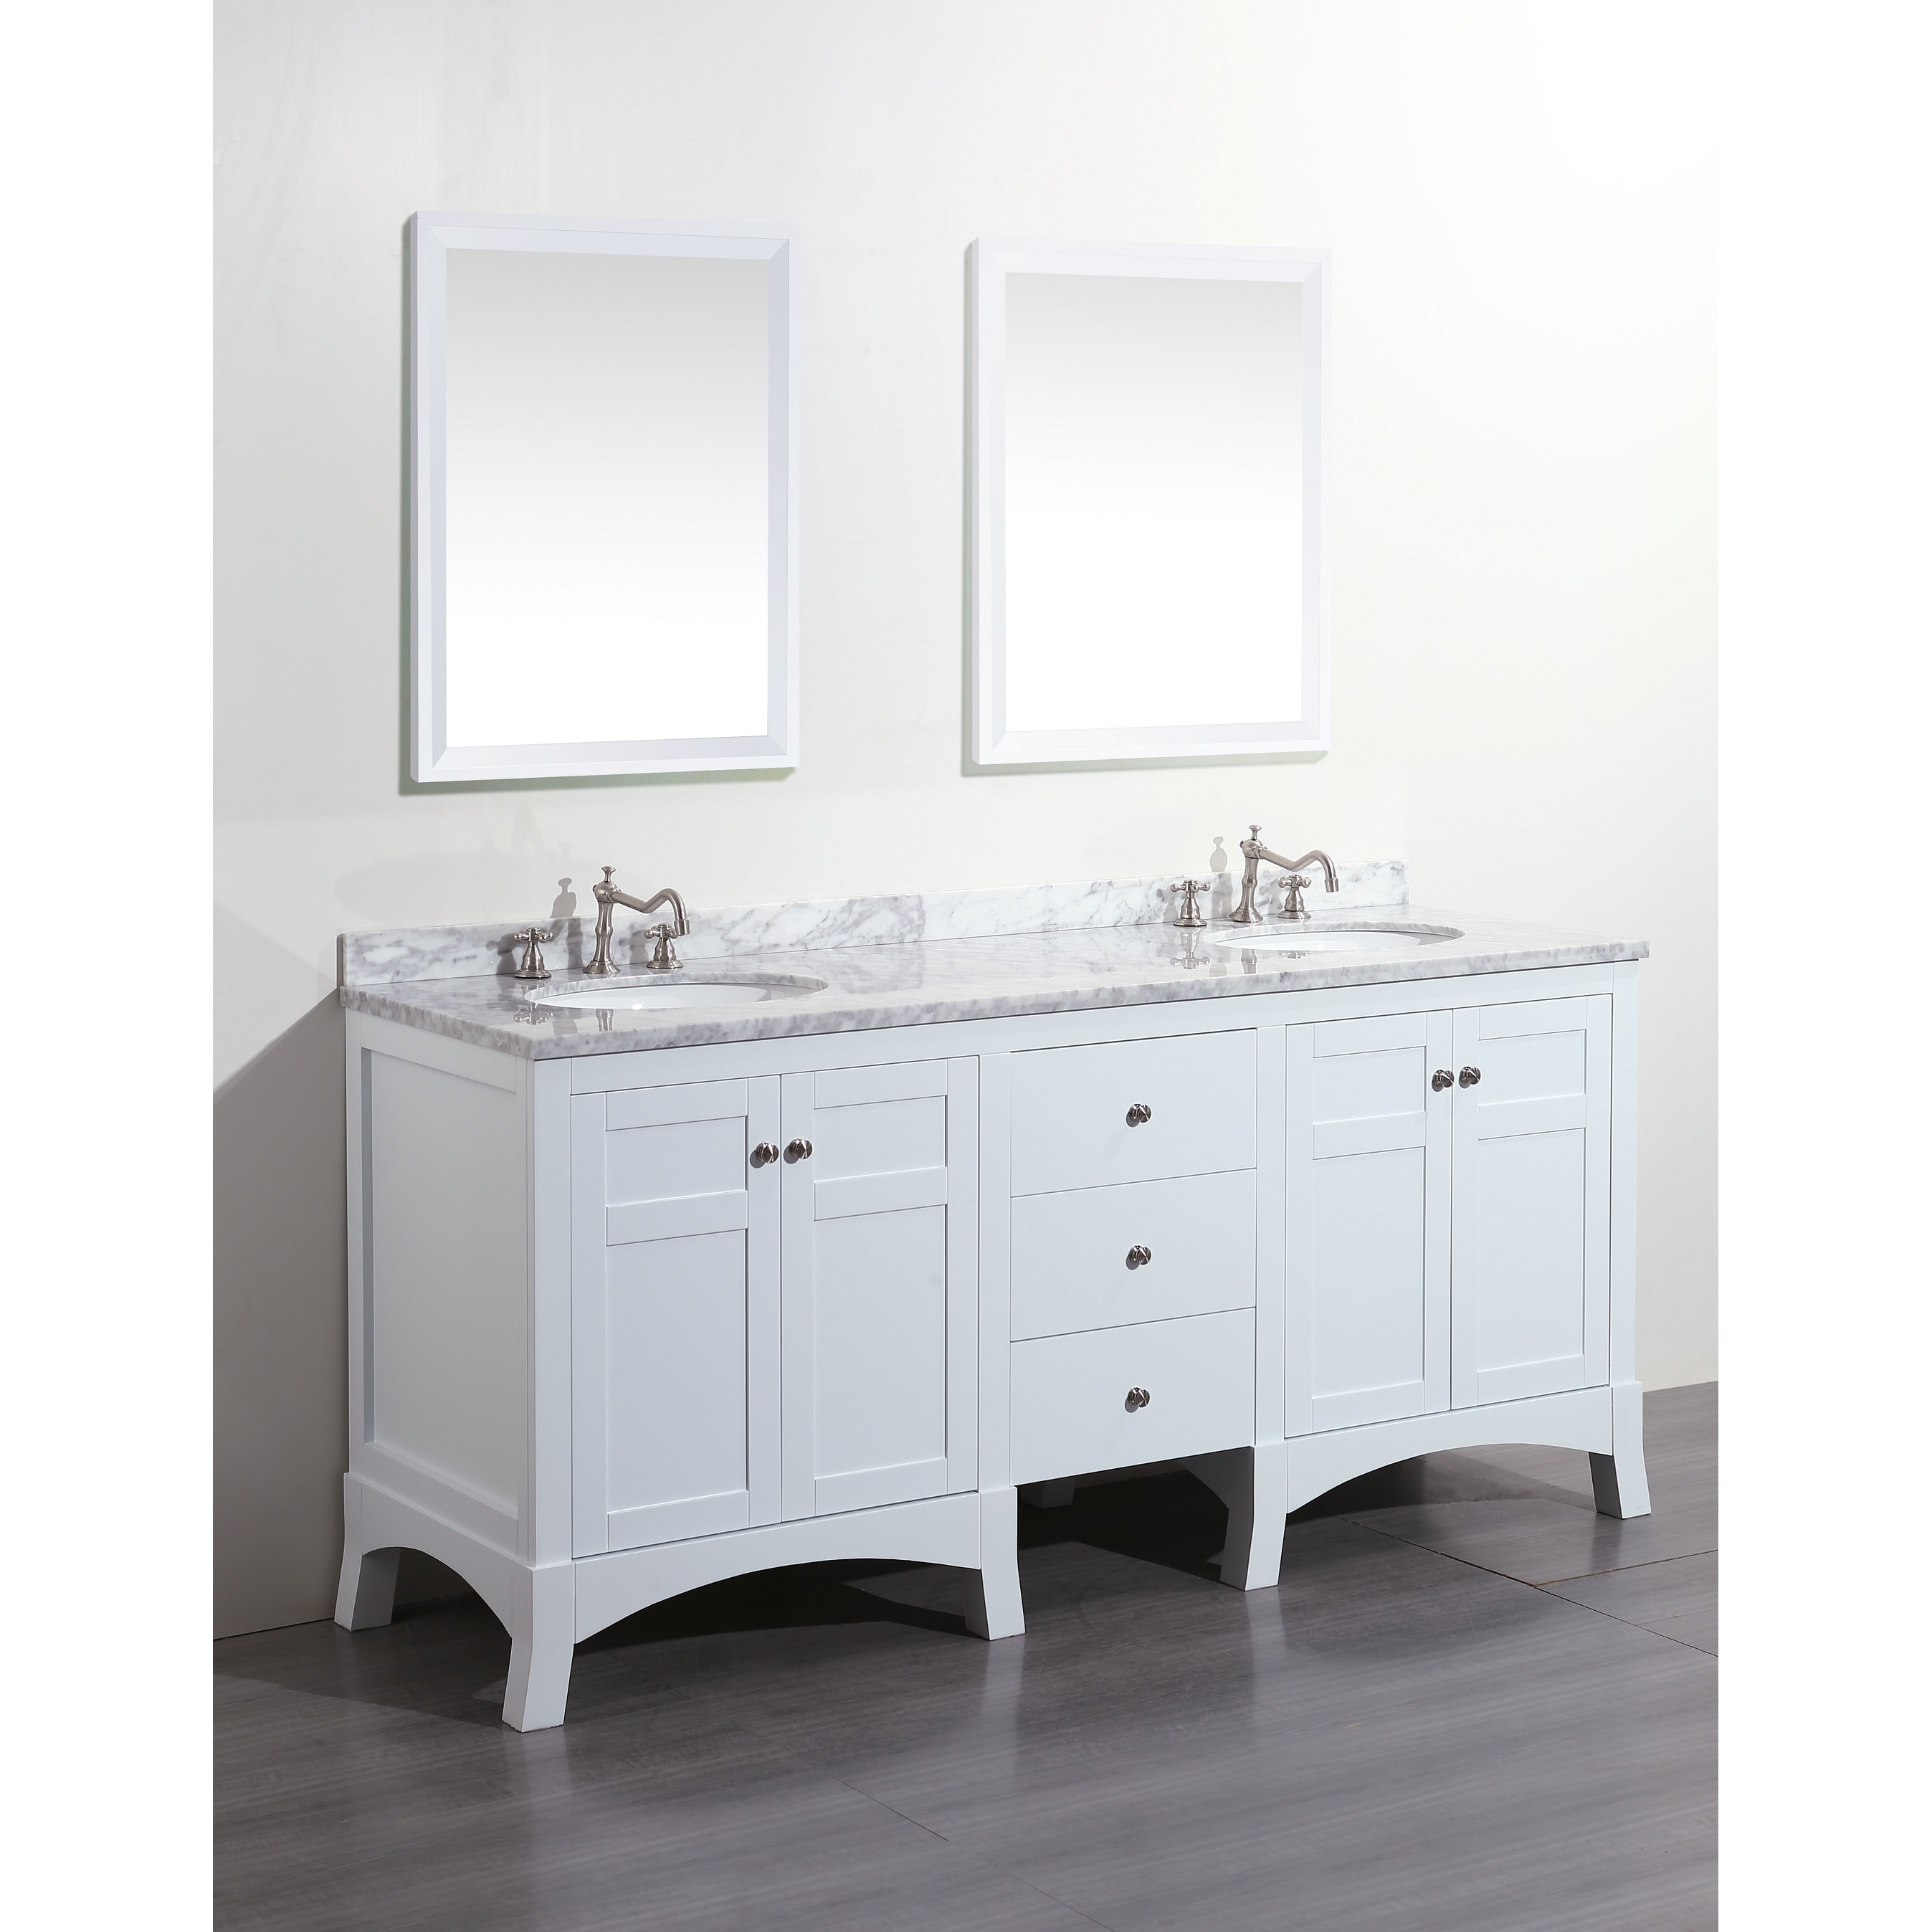 Eviva New York White Marble Carrera Counter-top and Sink White 72 ...